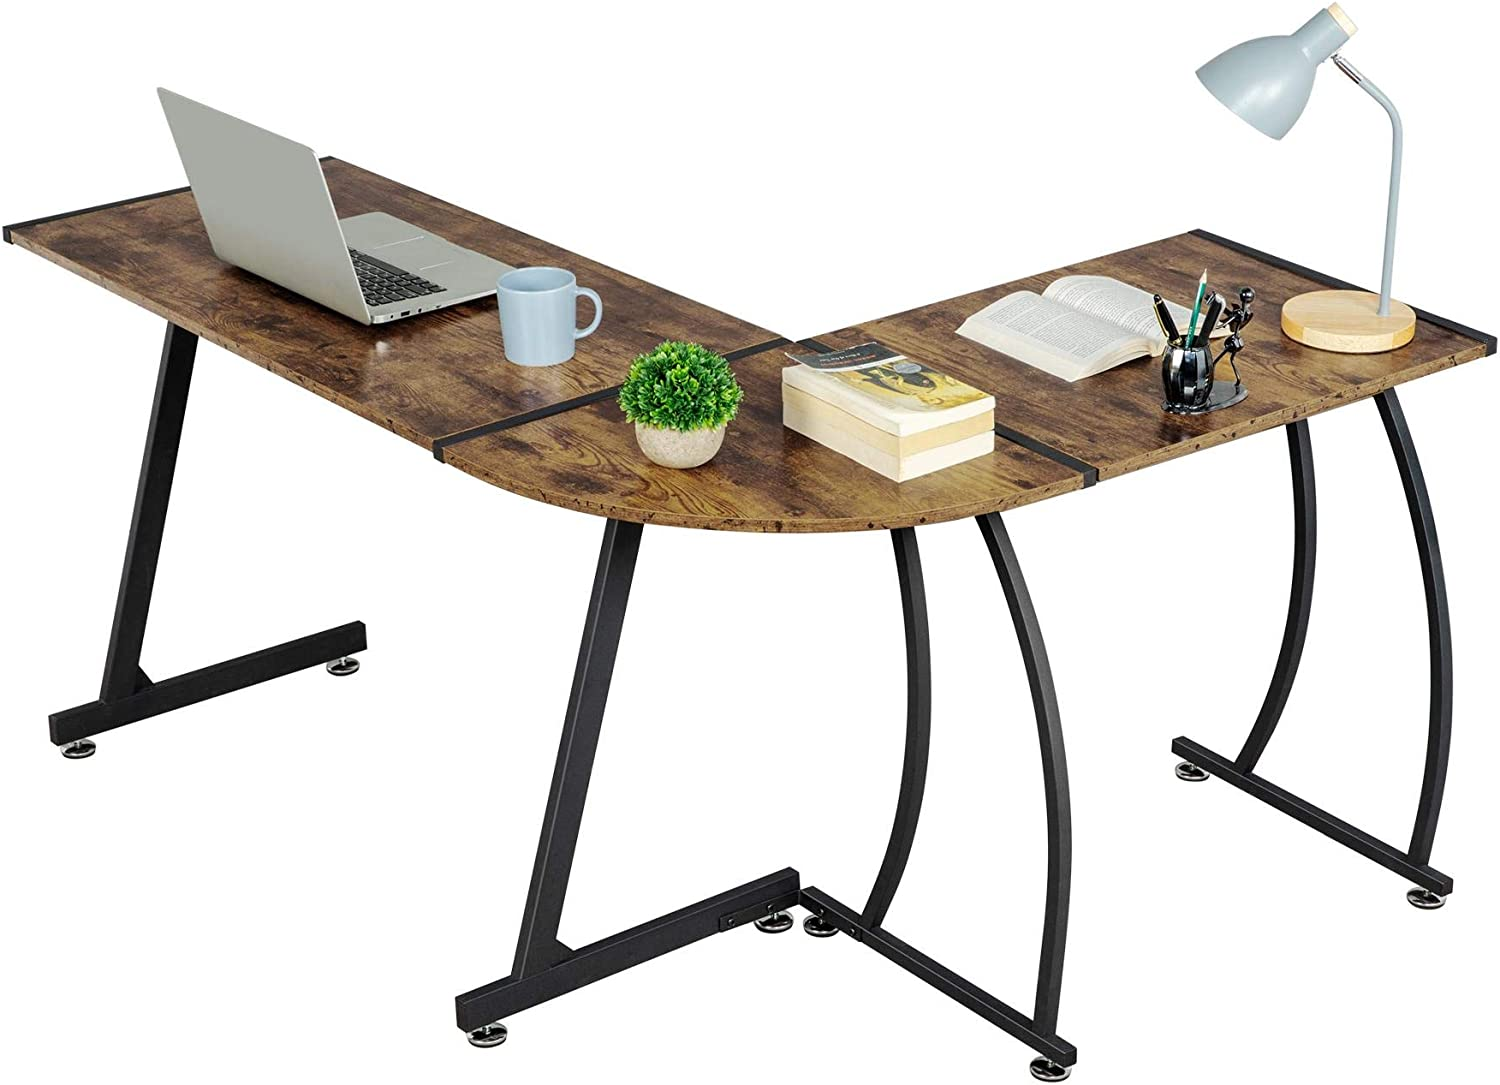 YAHEETECH 58 inch L-Shape Corner Computer Desk, Multipurpose Wood Writing Studying Table with Round Corner, Large PC Laptop Workstation Table, 3-Piece Modern Desk, Home Office Furniture, Rustic Brown